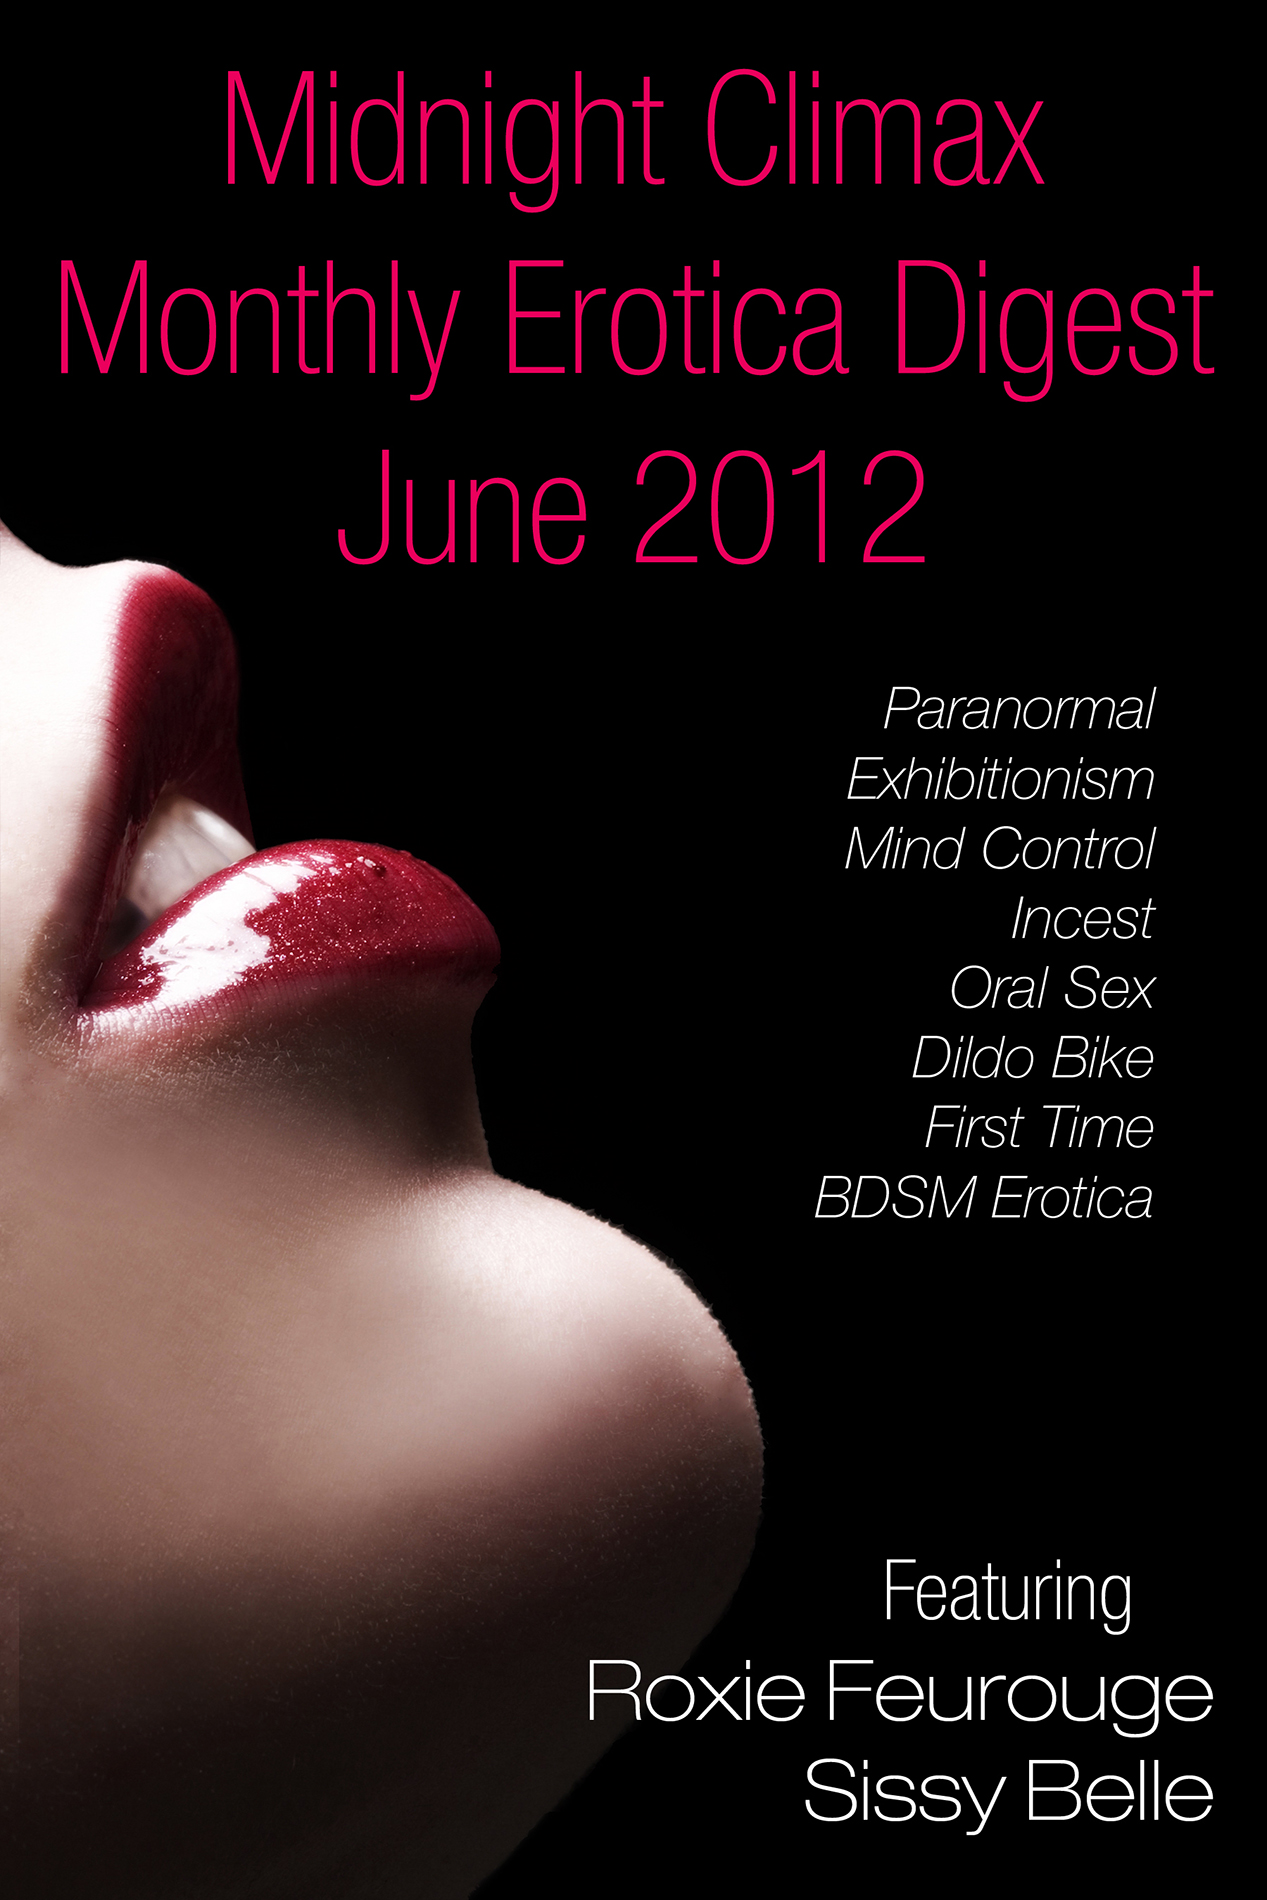 Midnight Climax Monthly Erotica Digest: June 2012 (Paranormal, Exhibitionism, Mind Control, Incest, Oral Sex, Dildo Bike, First Time, BDSM Erotica)